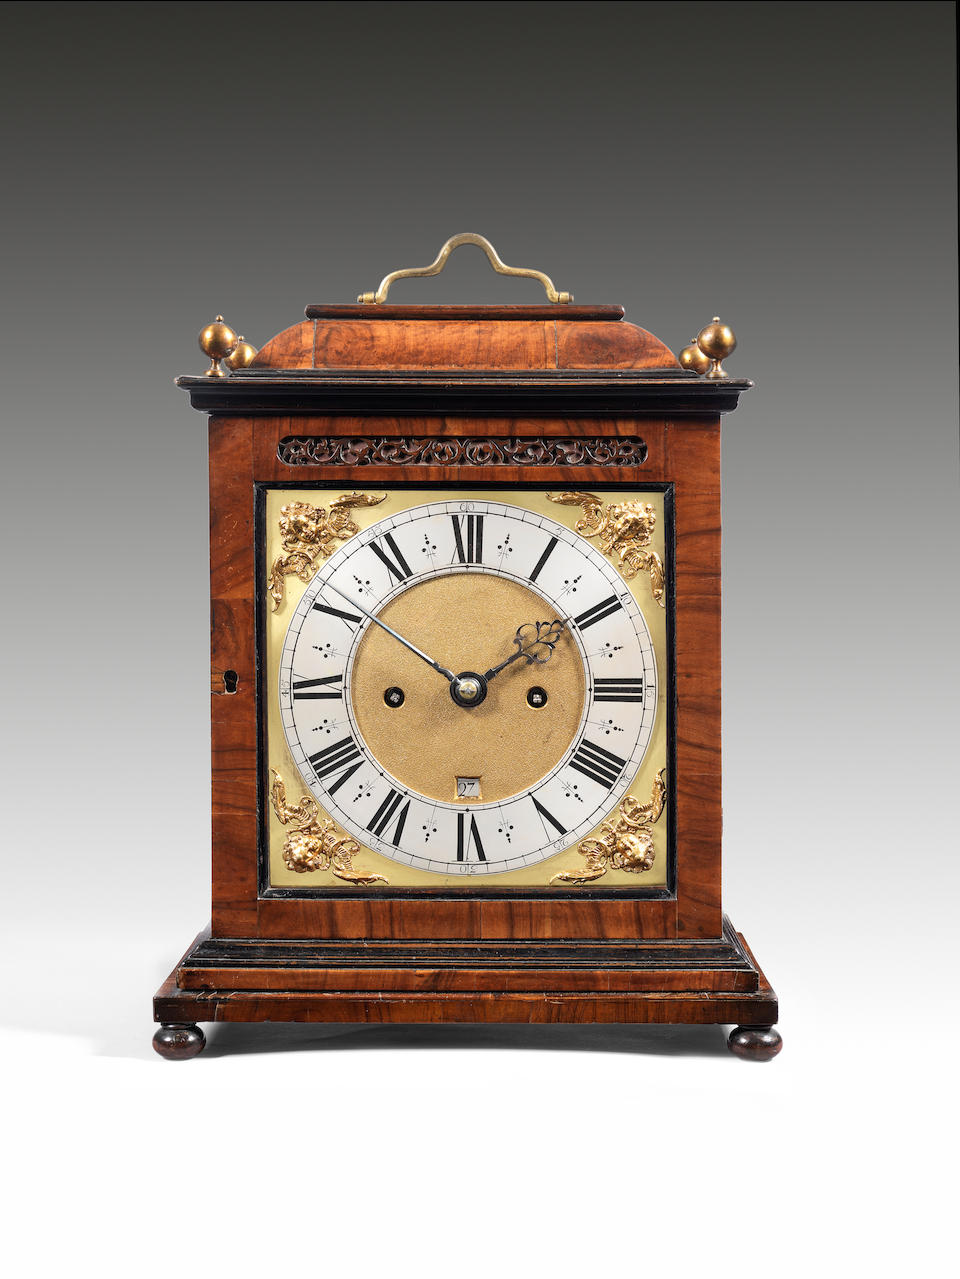 A very fine and rare late 17th century olivewood turntable clock Nathaniel Barrow, London, c 1675.